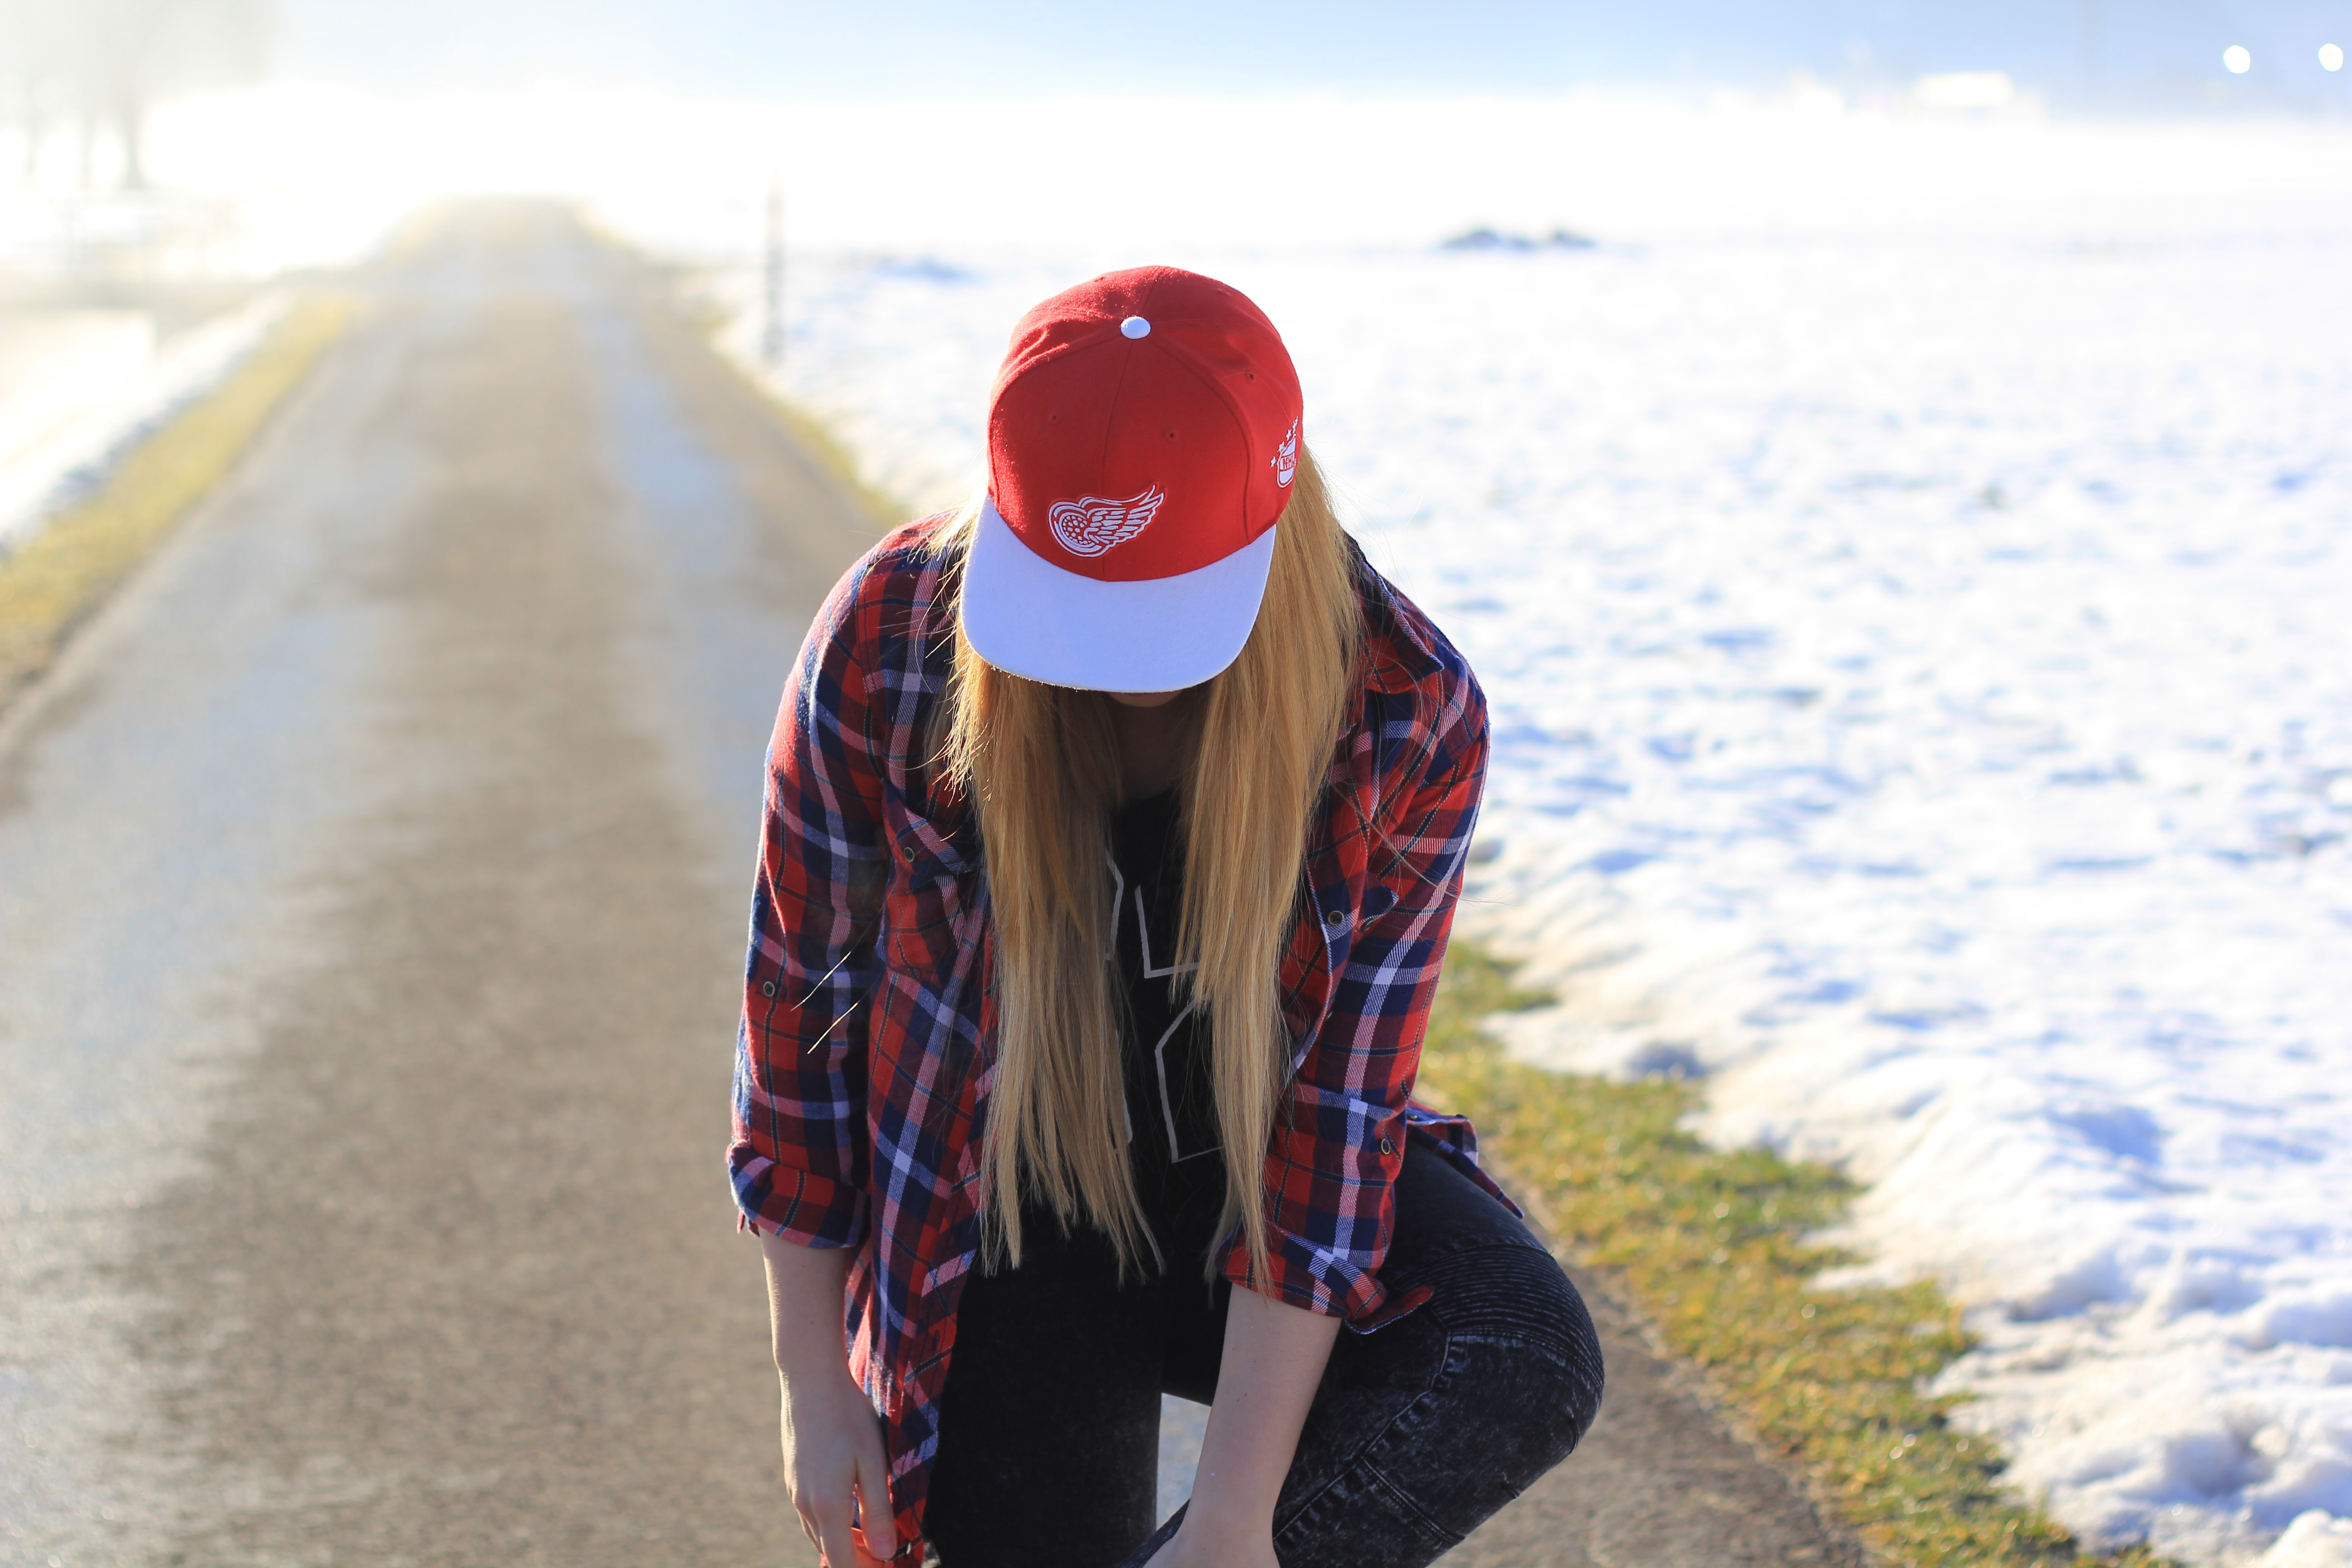 A woman in a plaid shirt and baseball cap kneels on a path aside snow